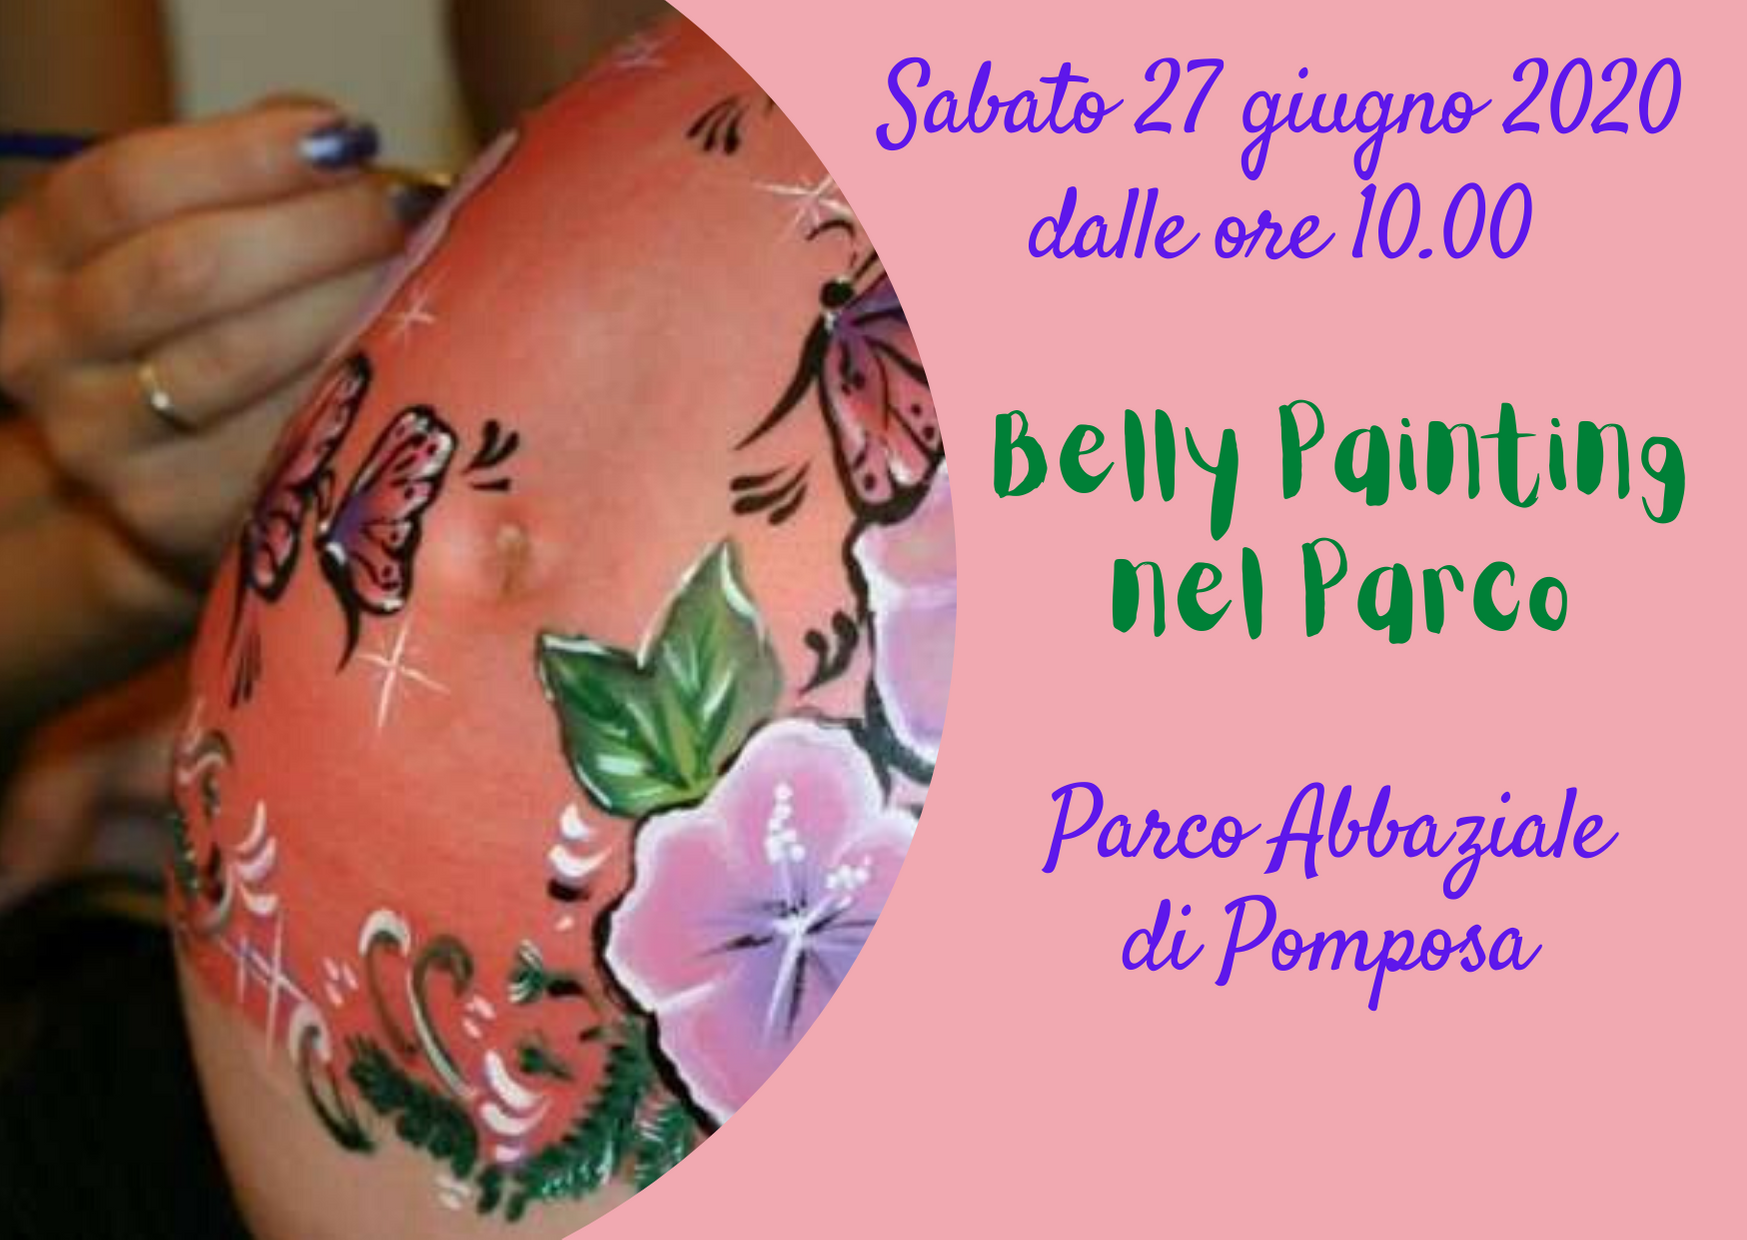 Belly Painting nel Parco